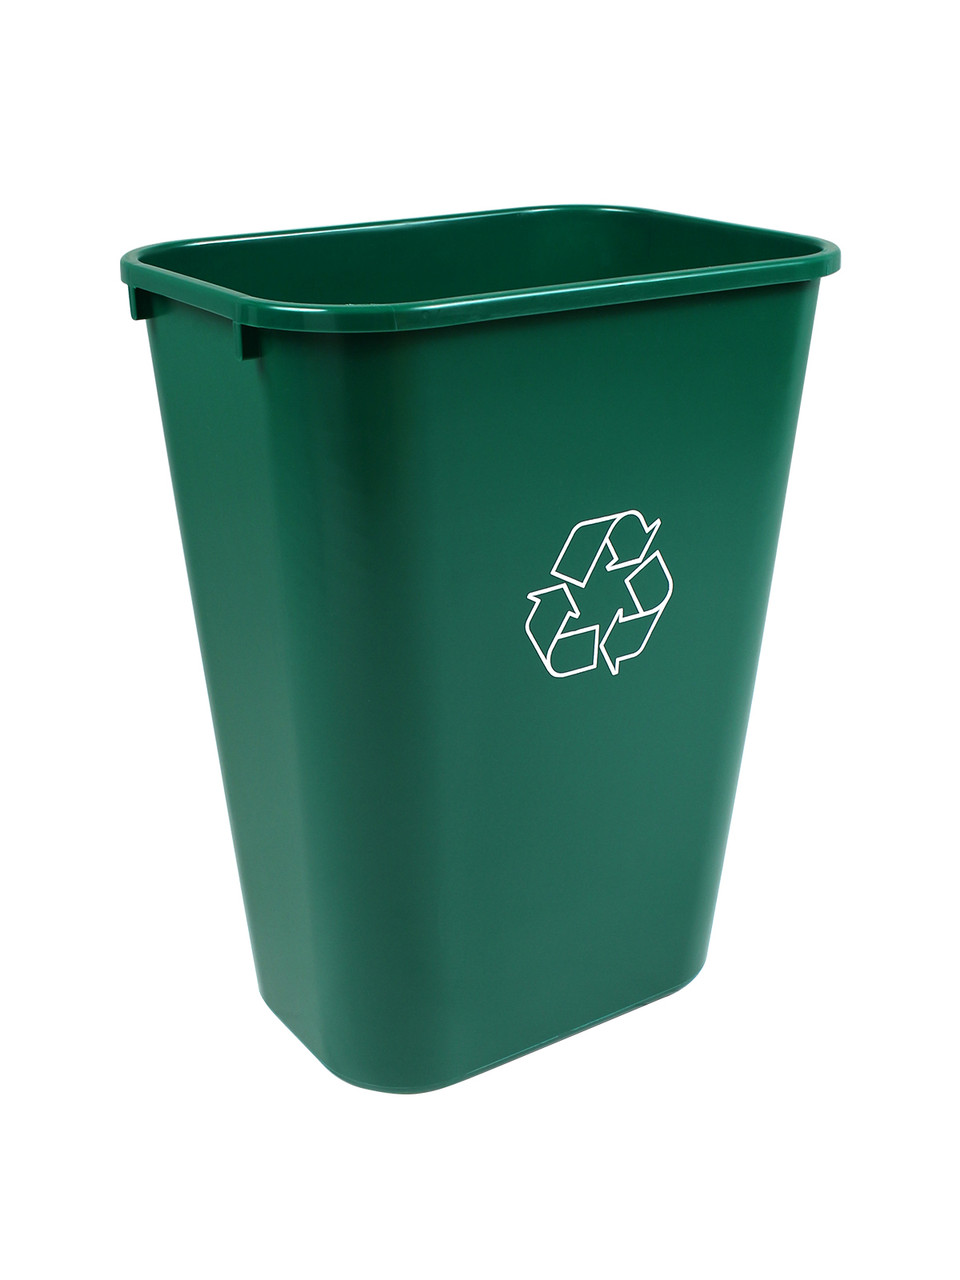 41 Quart Plastic Office Desk Side Recycling Wastebaskets Green 41QT-GN (8 Pack)